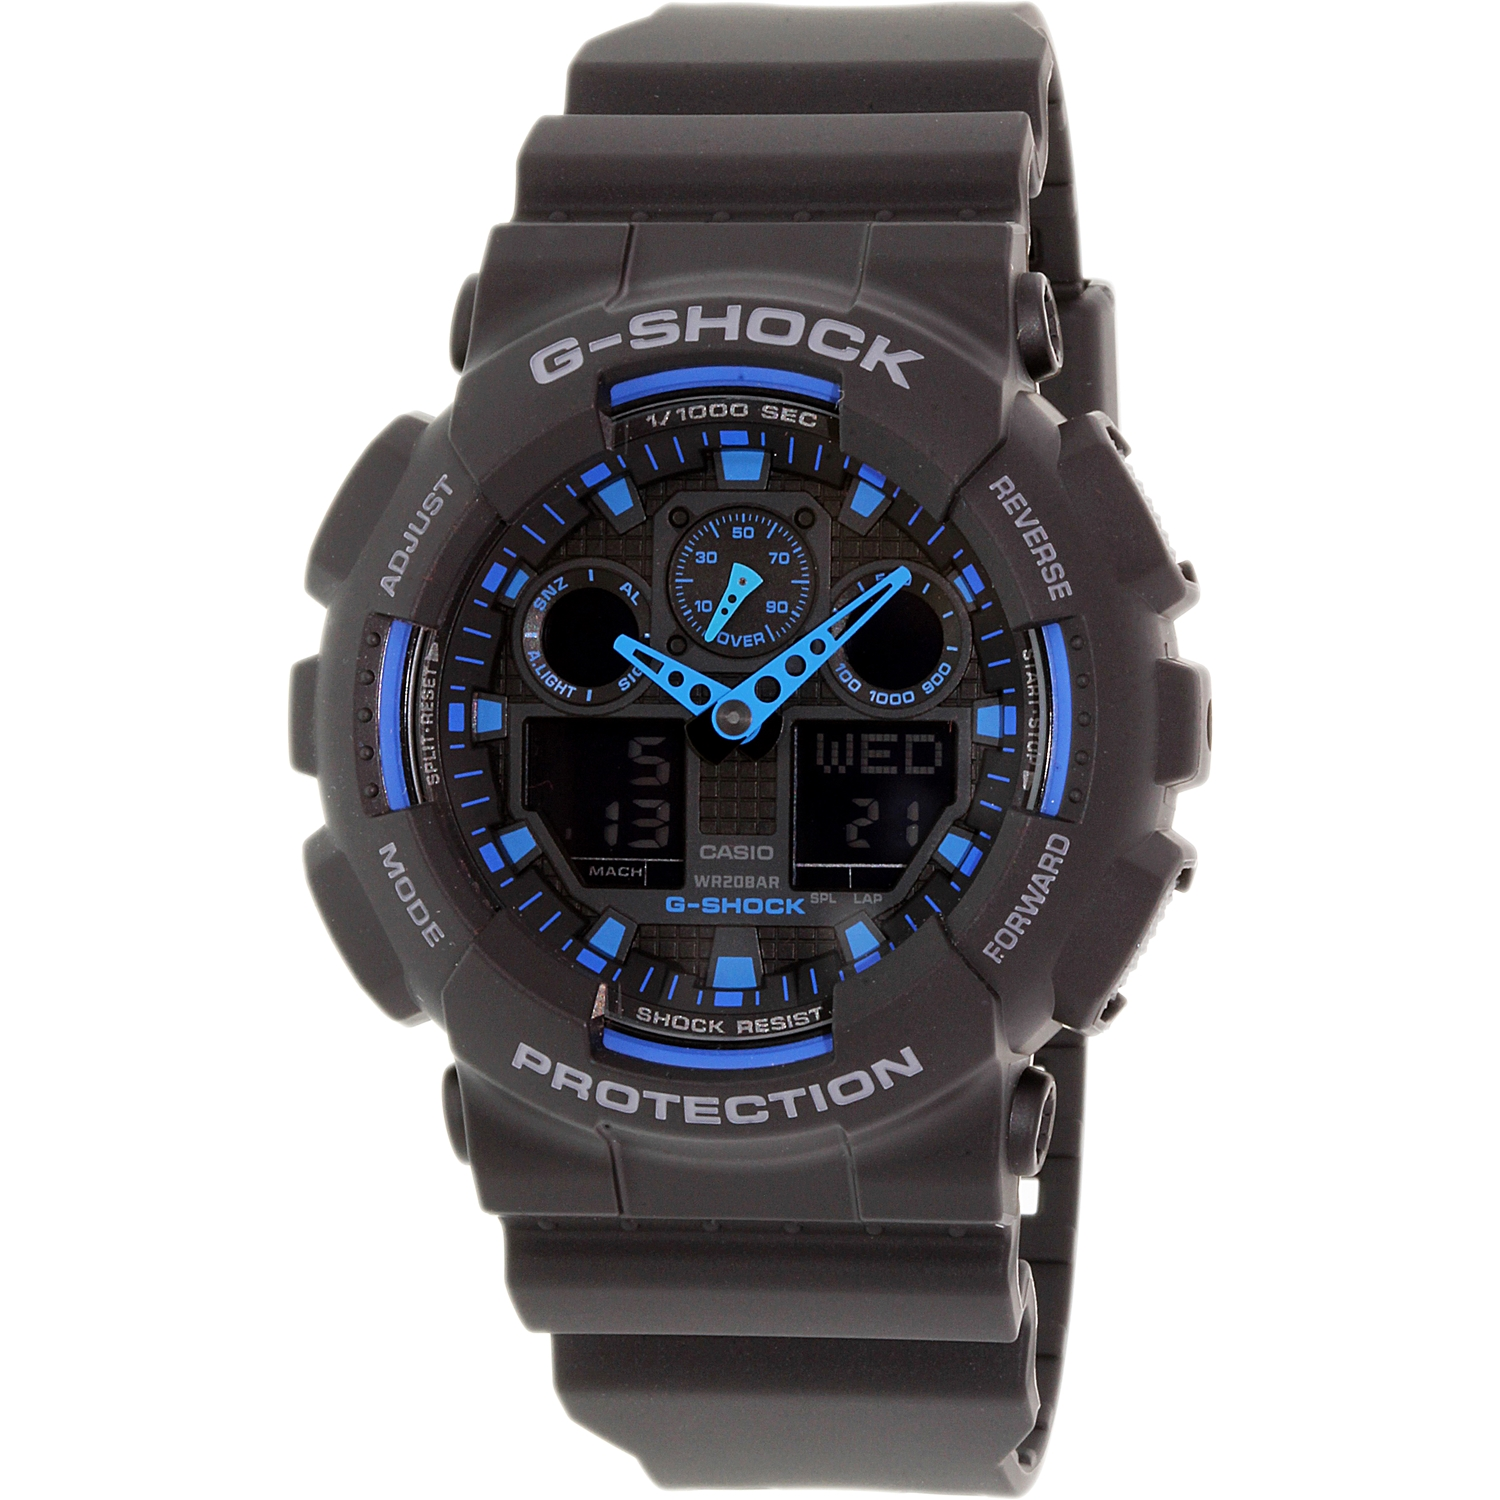 Casio Men's G-Shock GA100-1A2 Black Resin Quartz Fashion Watch